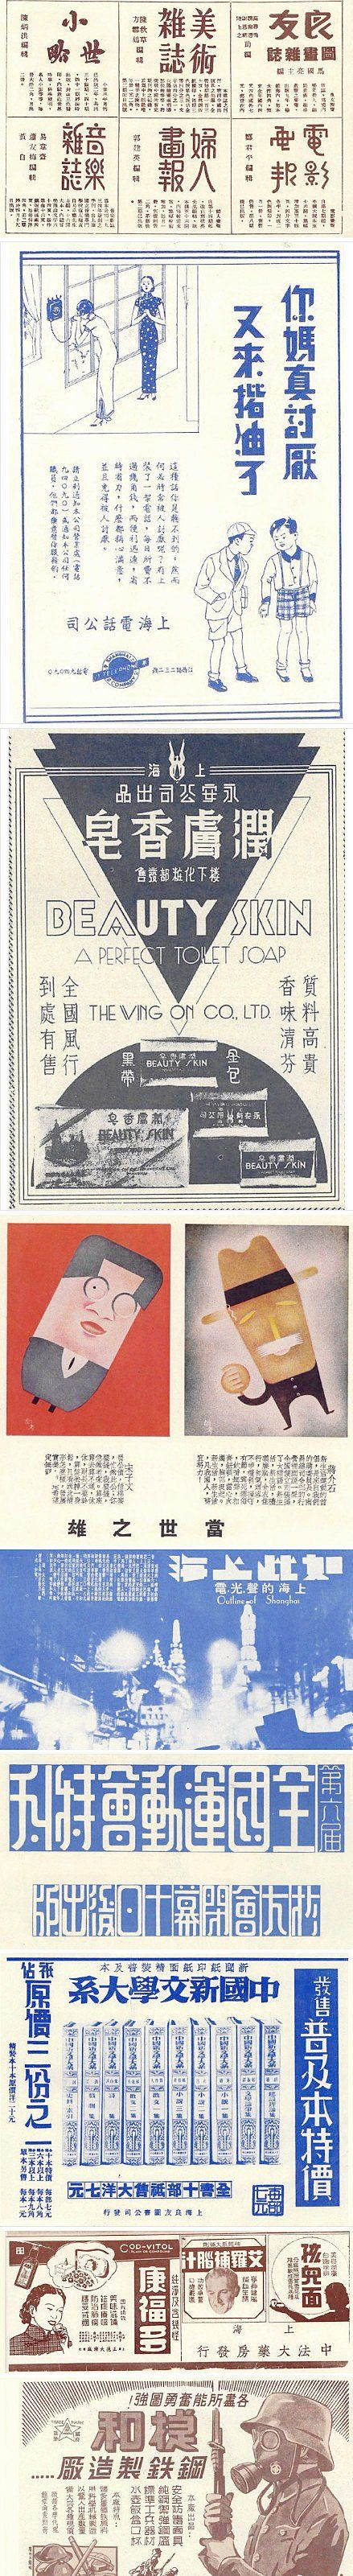 1912-1949 / China Graphic Design